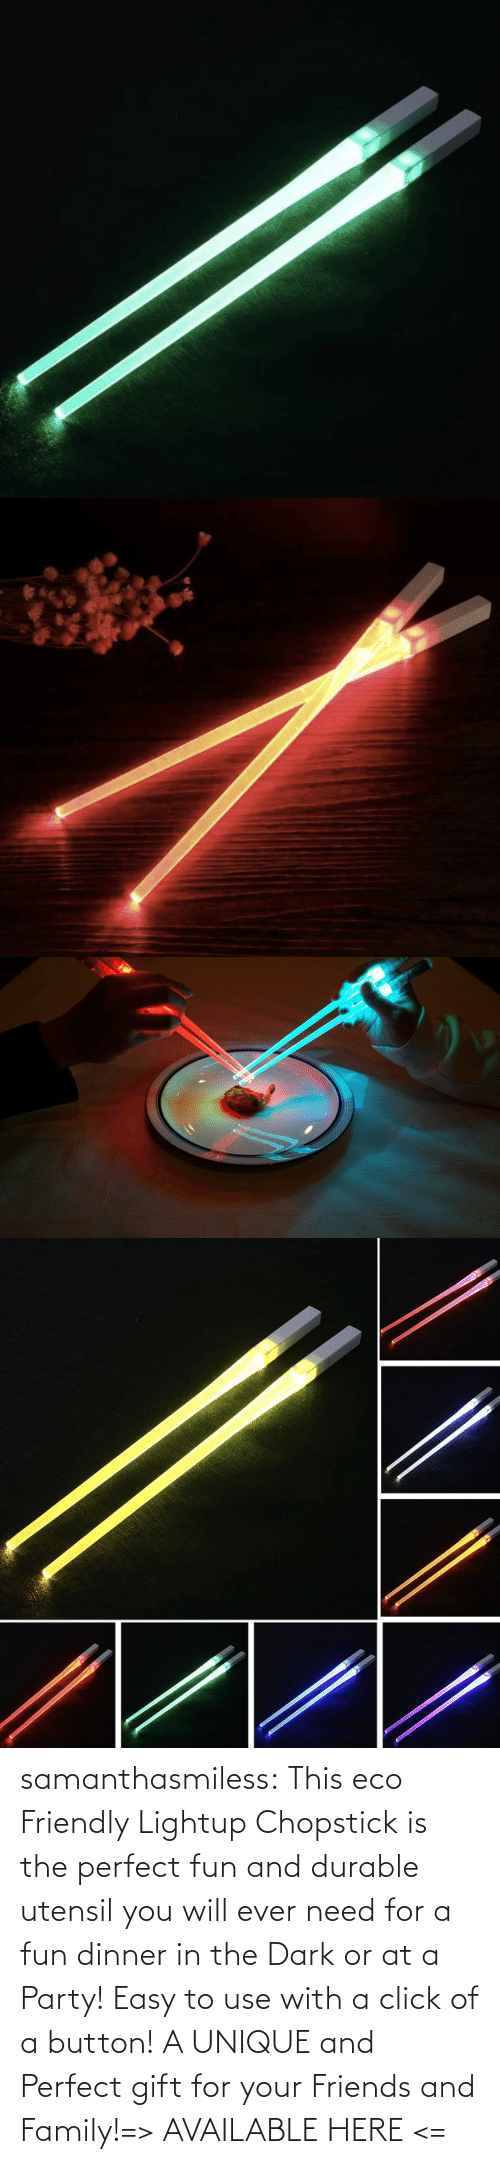 Click: samanthasmiless:  This eco Friendly Lightup Chopstick is the perfect fun and durable utensil you will ever need for a fun dinner in the Dark or at a Party! Easy to use with a click of a button! A UNIQUE and Perfect gift for your Friends and Family!=> AVAILABLE HERE <=